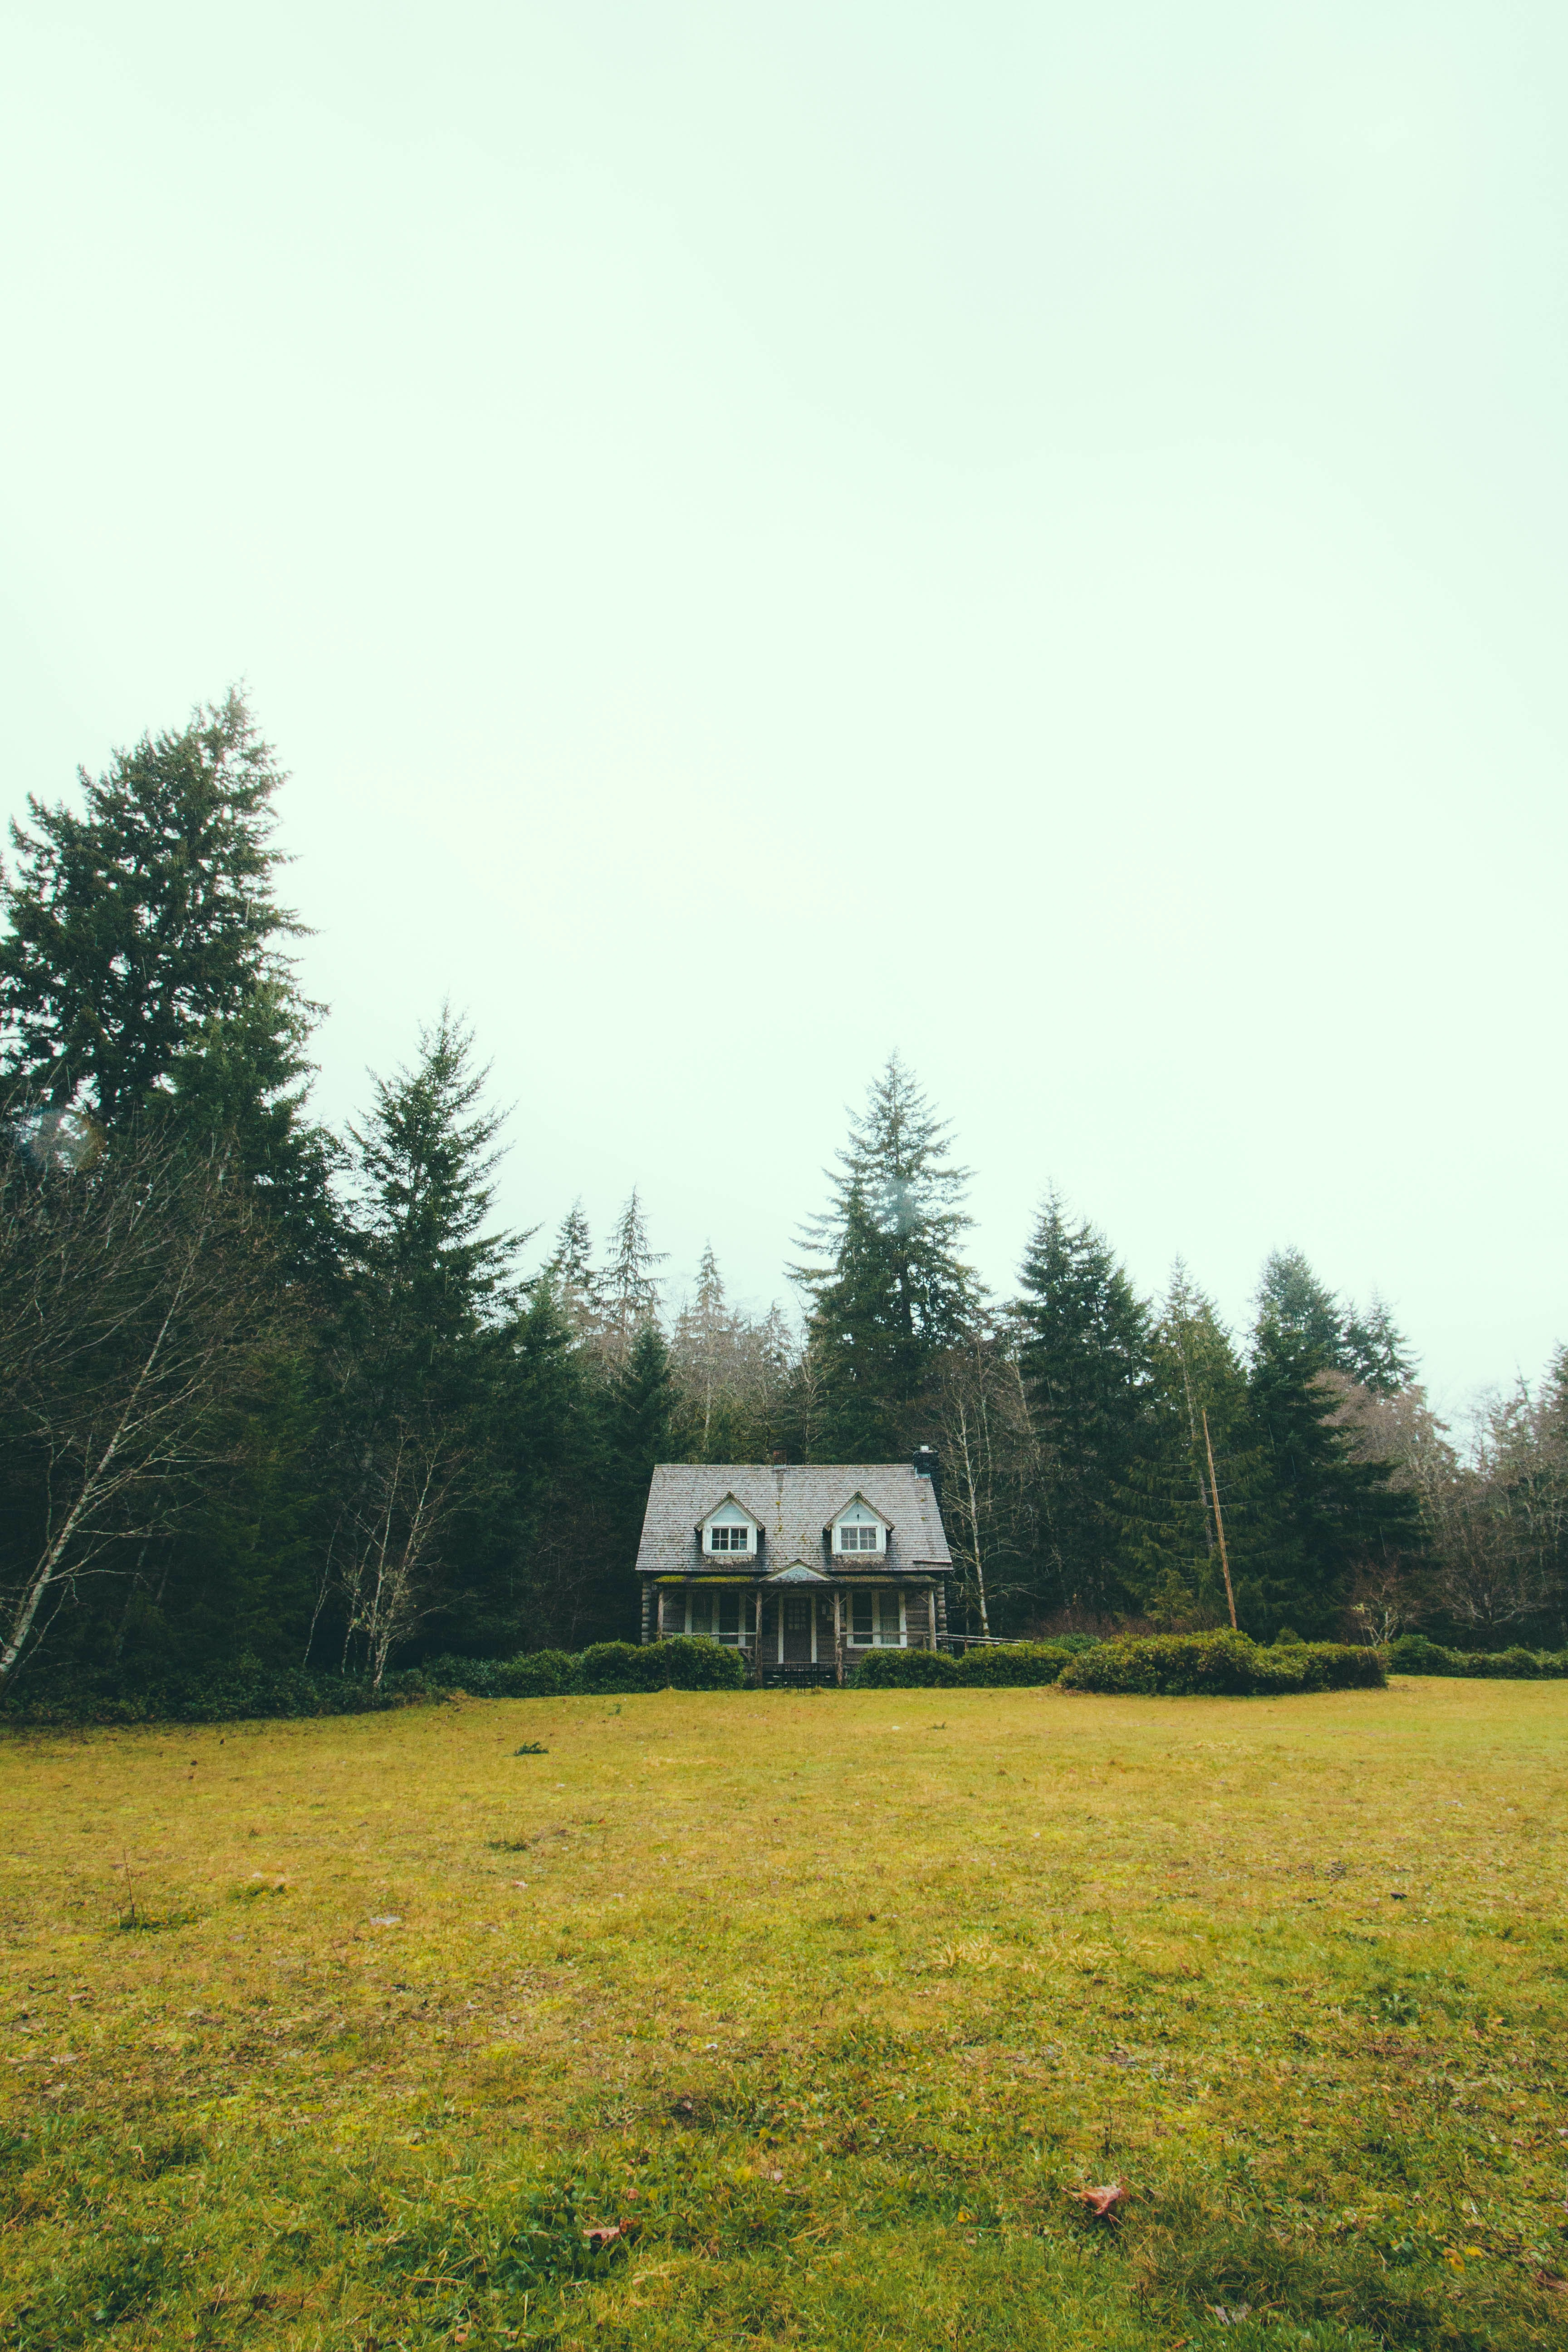 gray and white house near pine trees